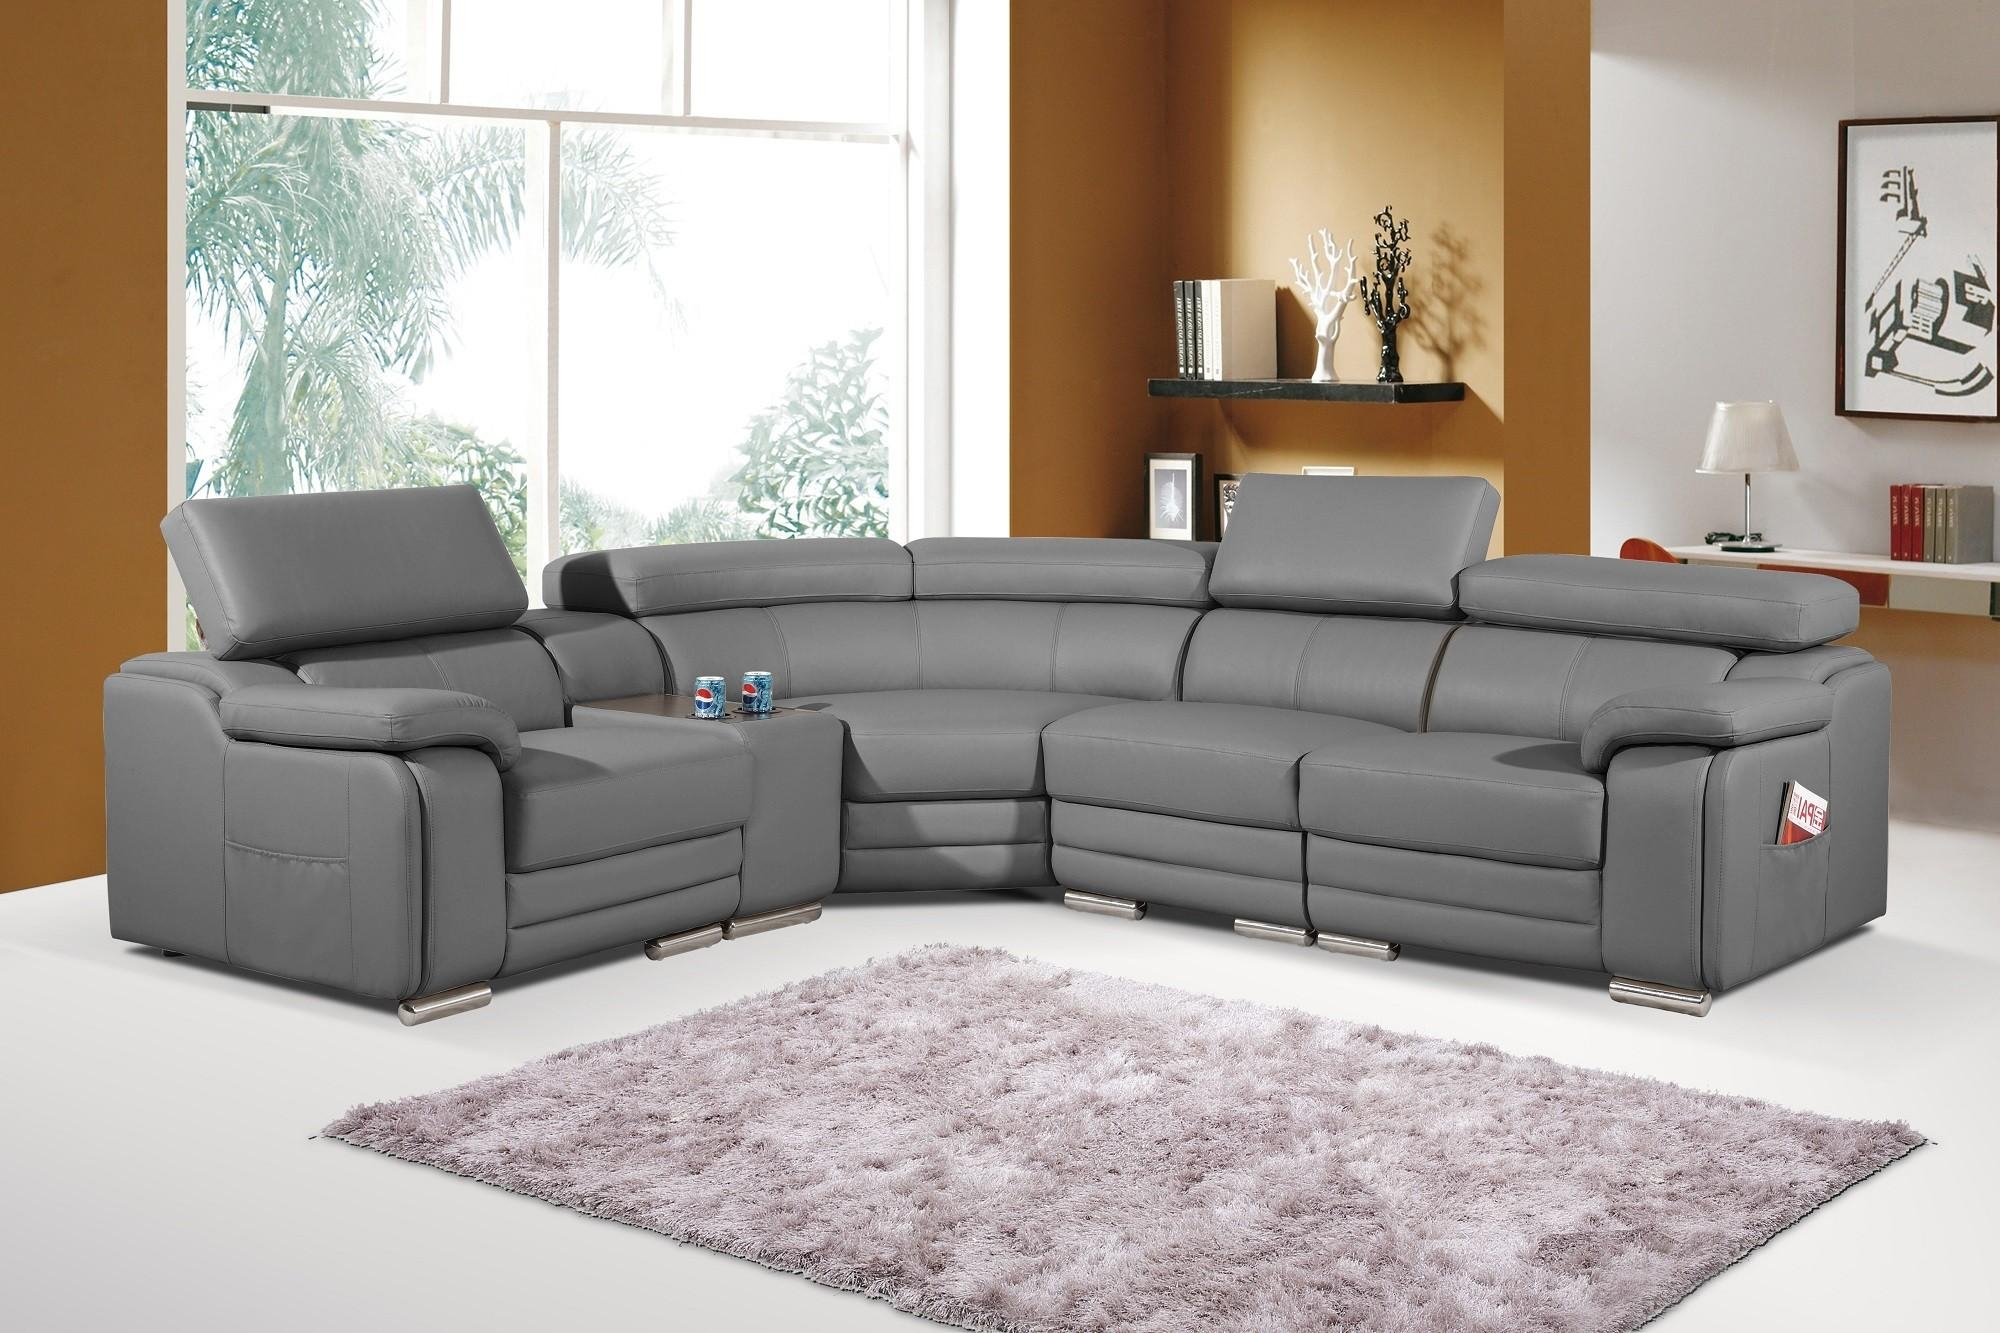 Dakota Stylist Modern Grey Leather Corner Sofa Left/hand In Corner Sofa Leather (Image 7 of 20)